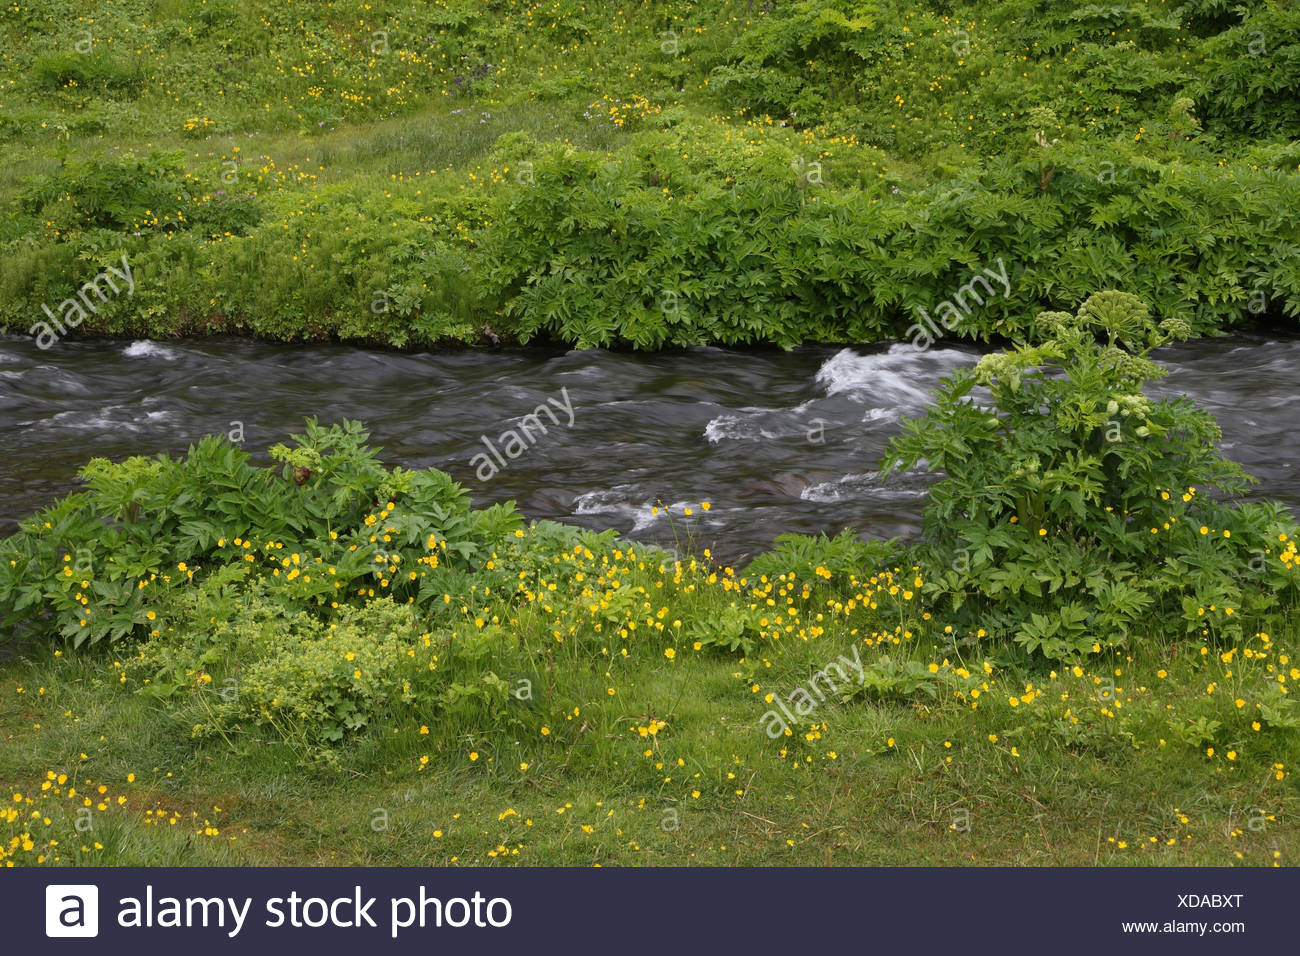 Meadow, brook, angelic herb, crowfoot, - Stock Image